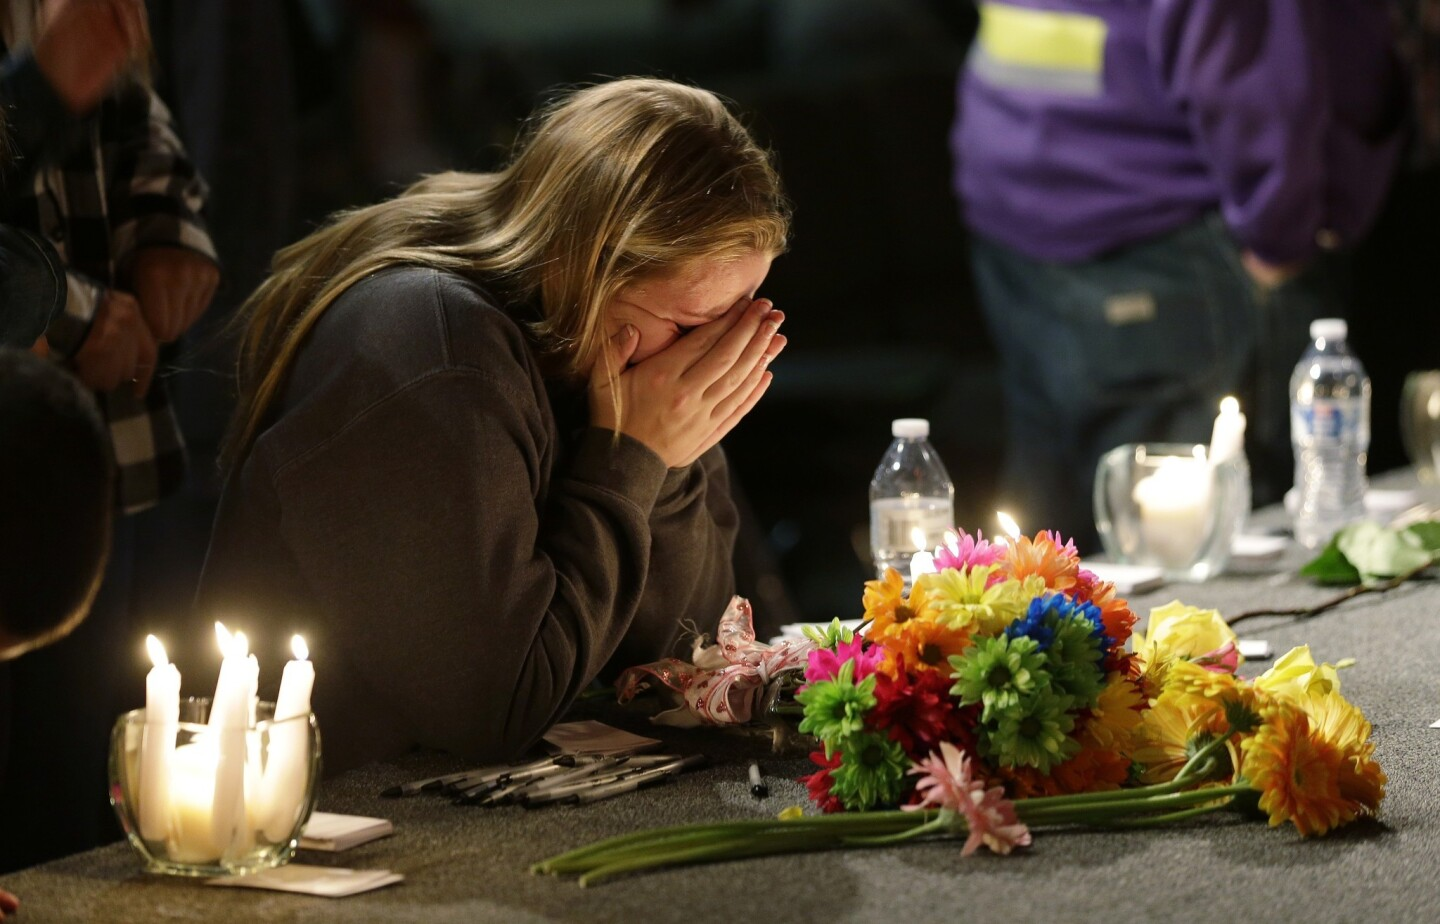 A woman grieves at a vigil at Grove Church in Marysville, Wash., held for victims of the shooting at Marysville-Pilchuck High School.